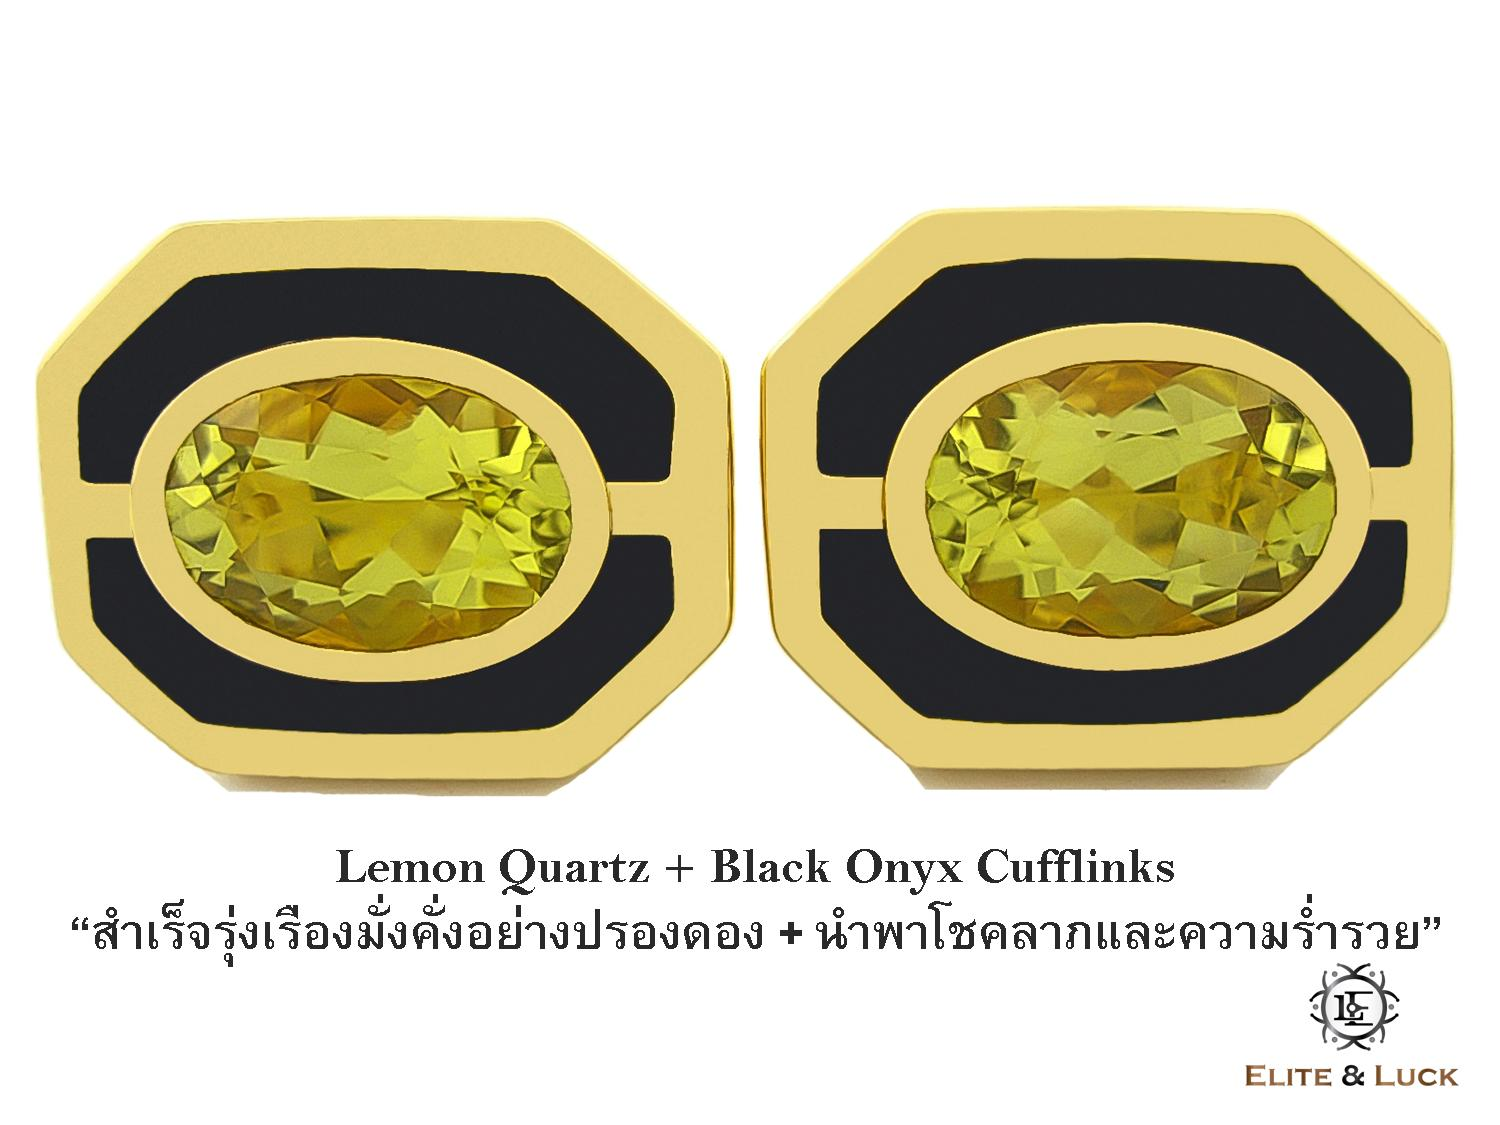 Lemon Quartz + Black Onyx Sterling Silver Cufflinks สี 18K Yellow Gold รุ่น Charming